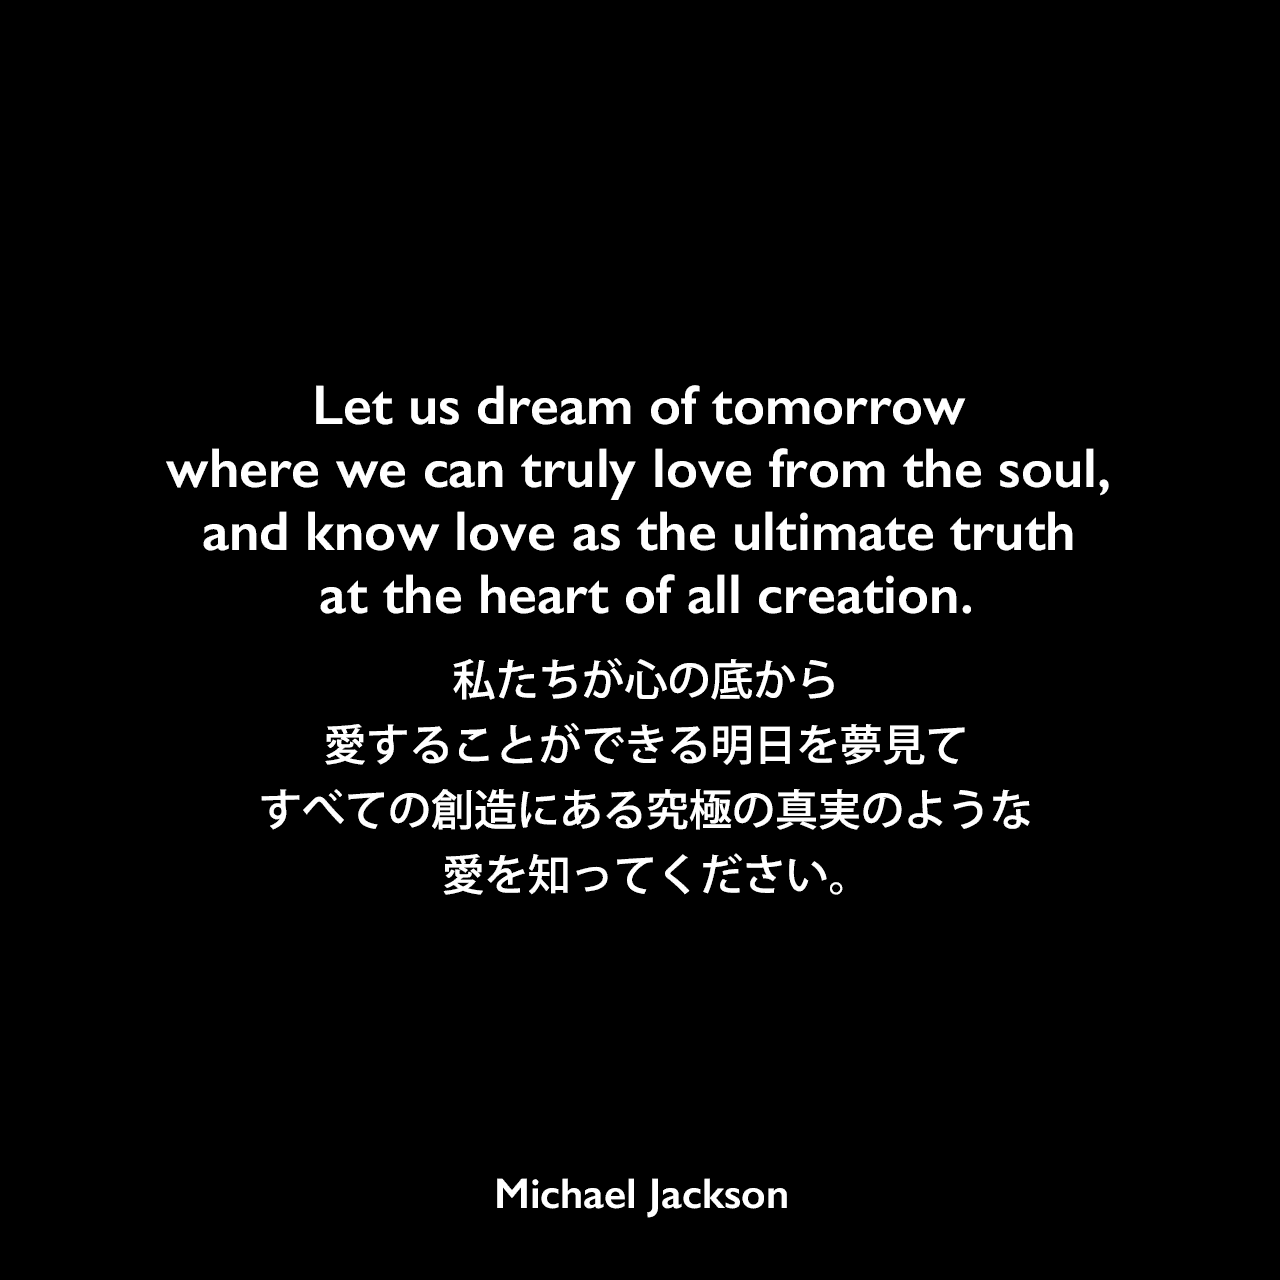 Let us dream of tomorrow where we can truly love from the soul, and know love as the ultimate truth at the heart of all creation.私たちが心の底から愛することができる明日を夢見て、すべての創造にある究極の真実のような愛を知ってください。Michael Jackson